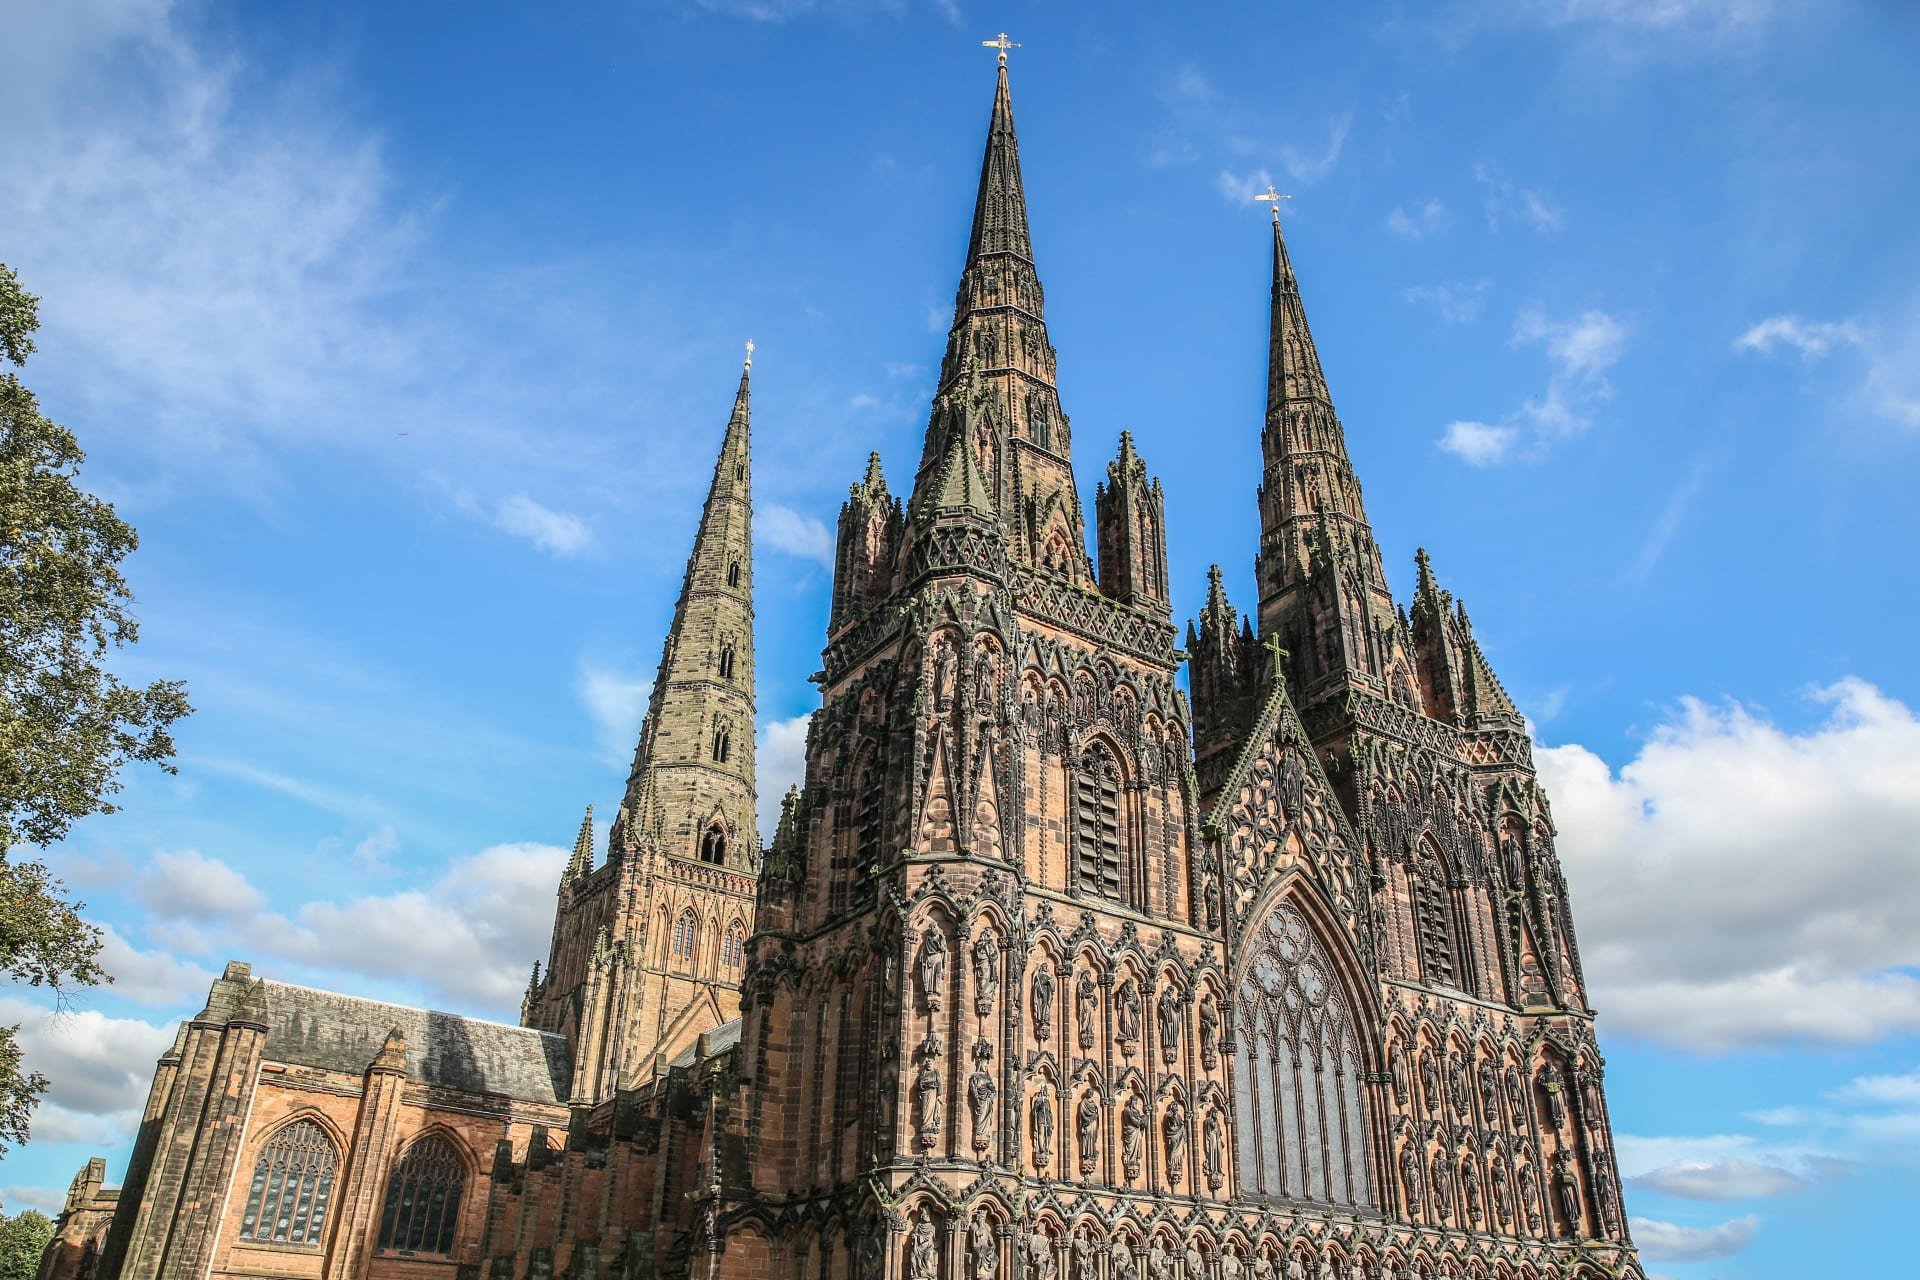 Lichfield - The Cathedral - 1300 Years of History